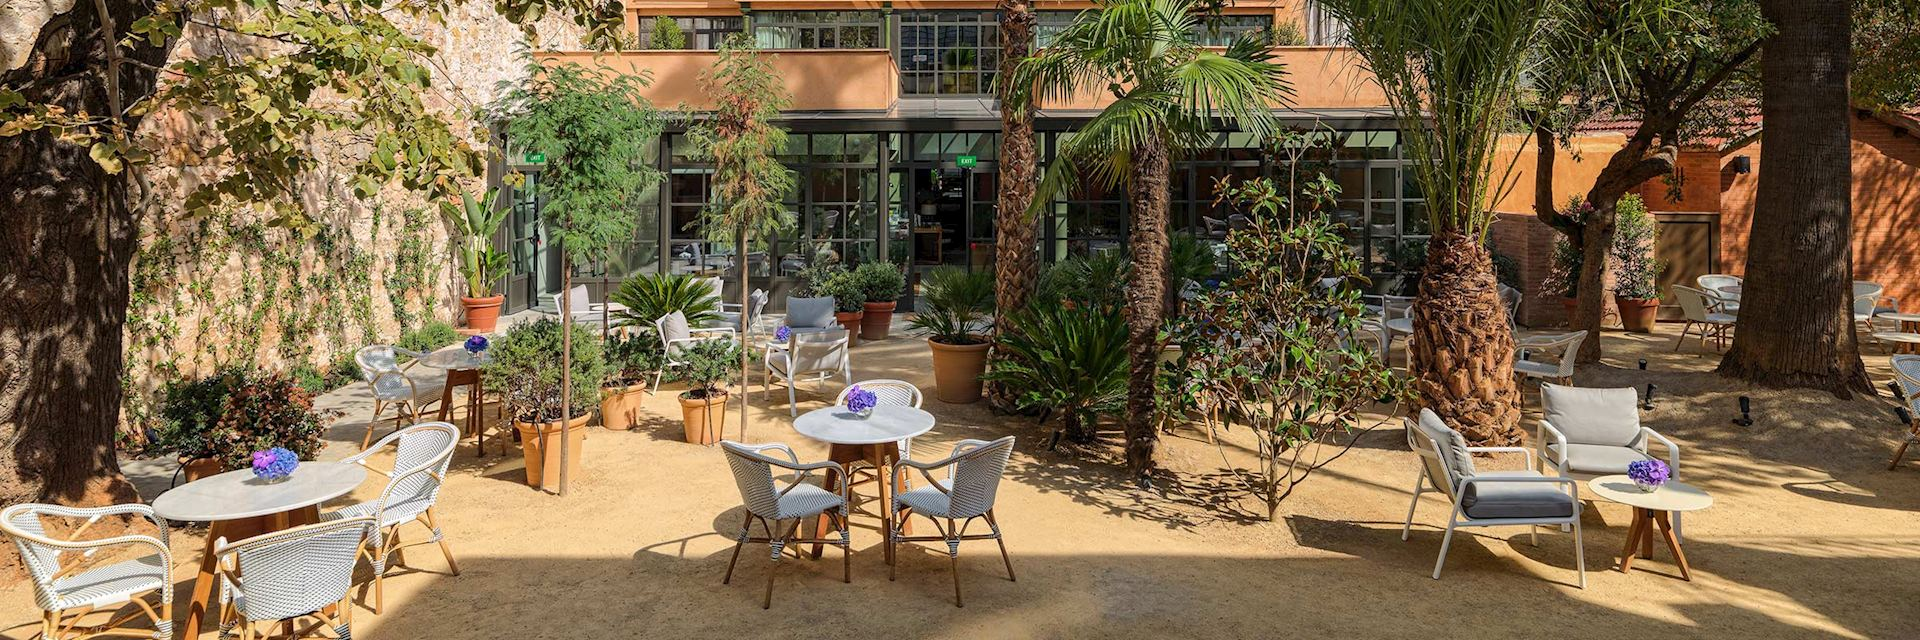 H10 Casa Mimosa Hotels In Barcelona Audley Travel